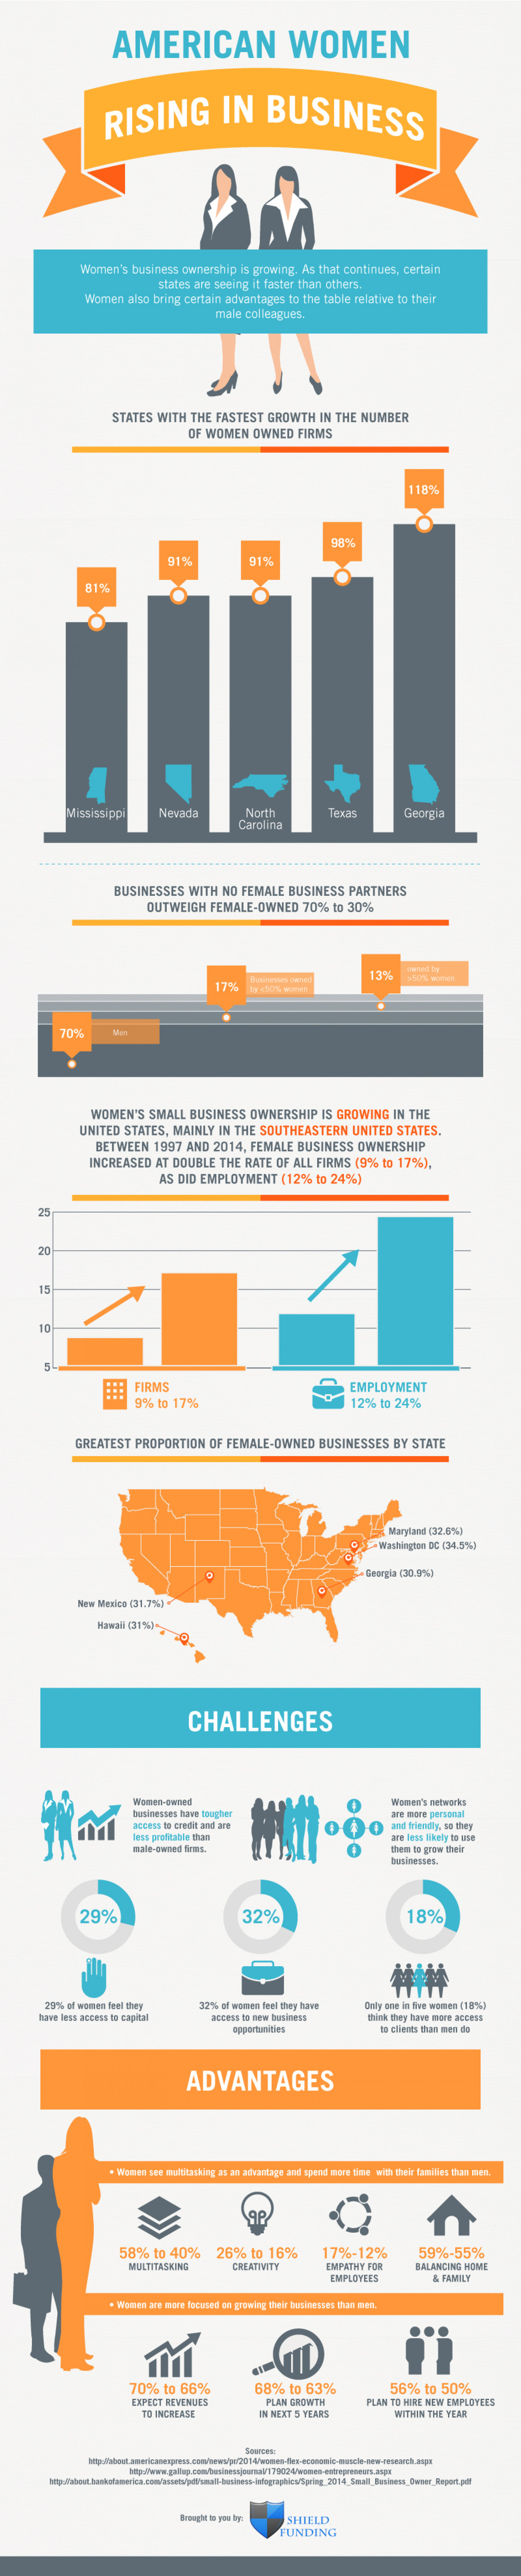 American Women Rising in Business Infographic